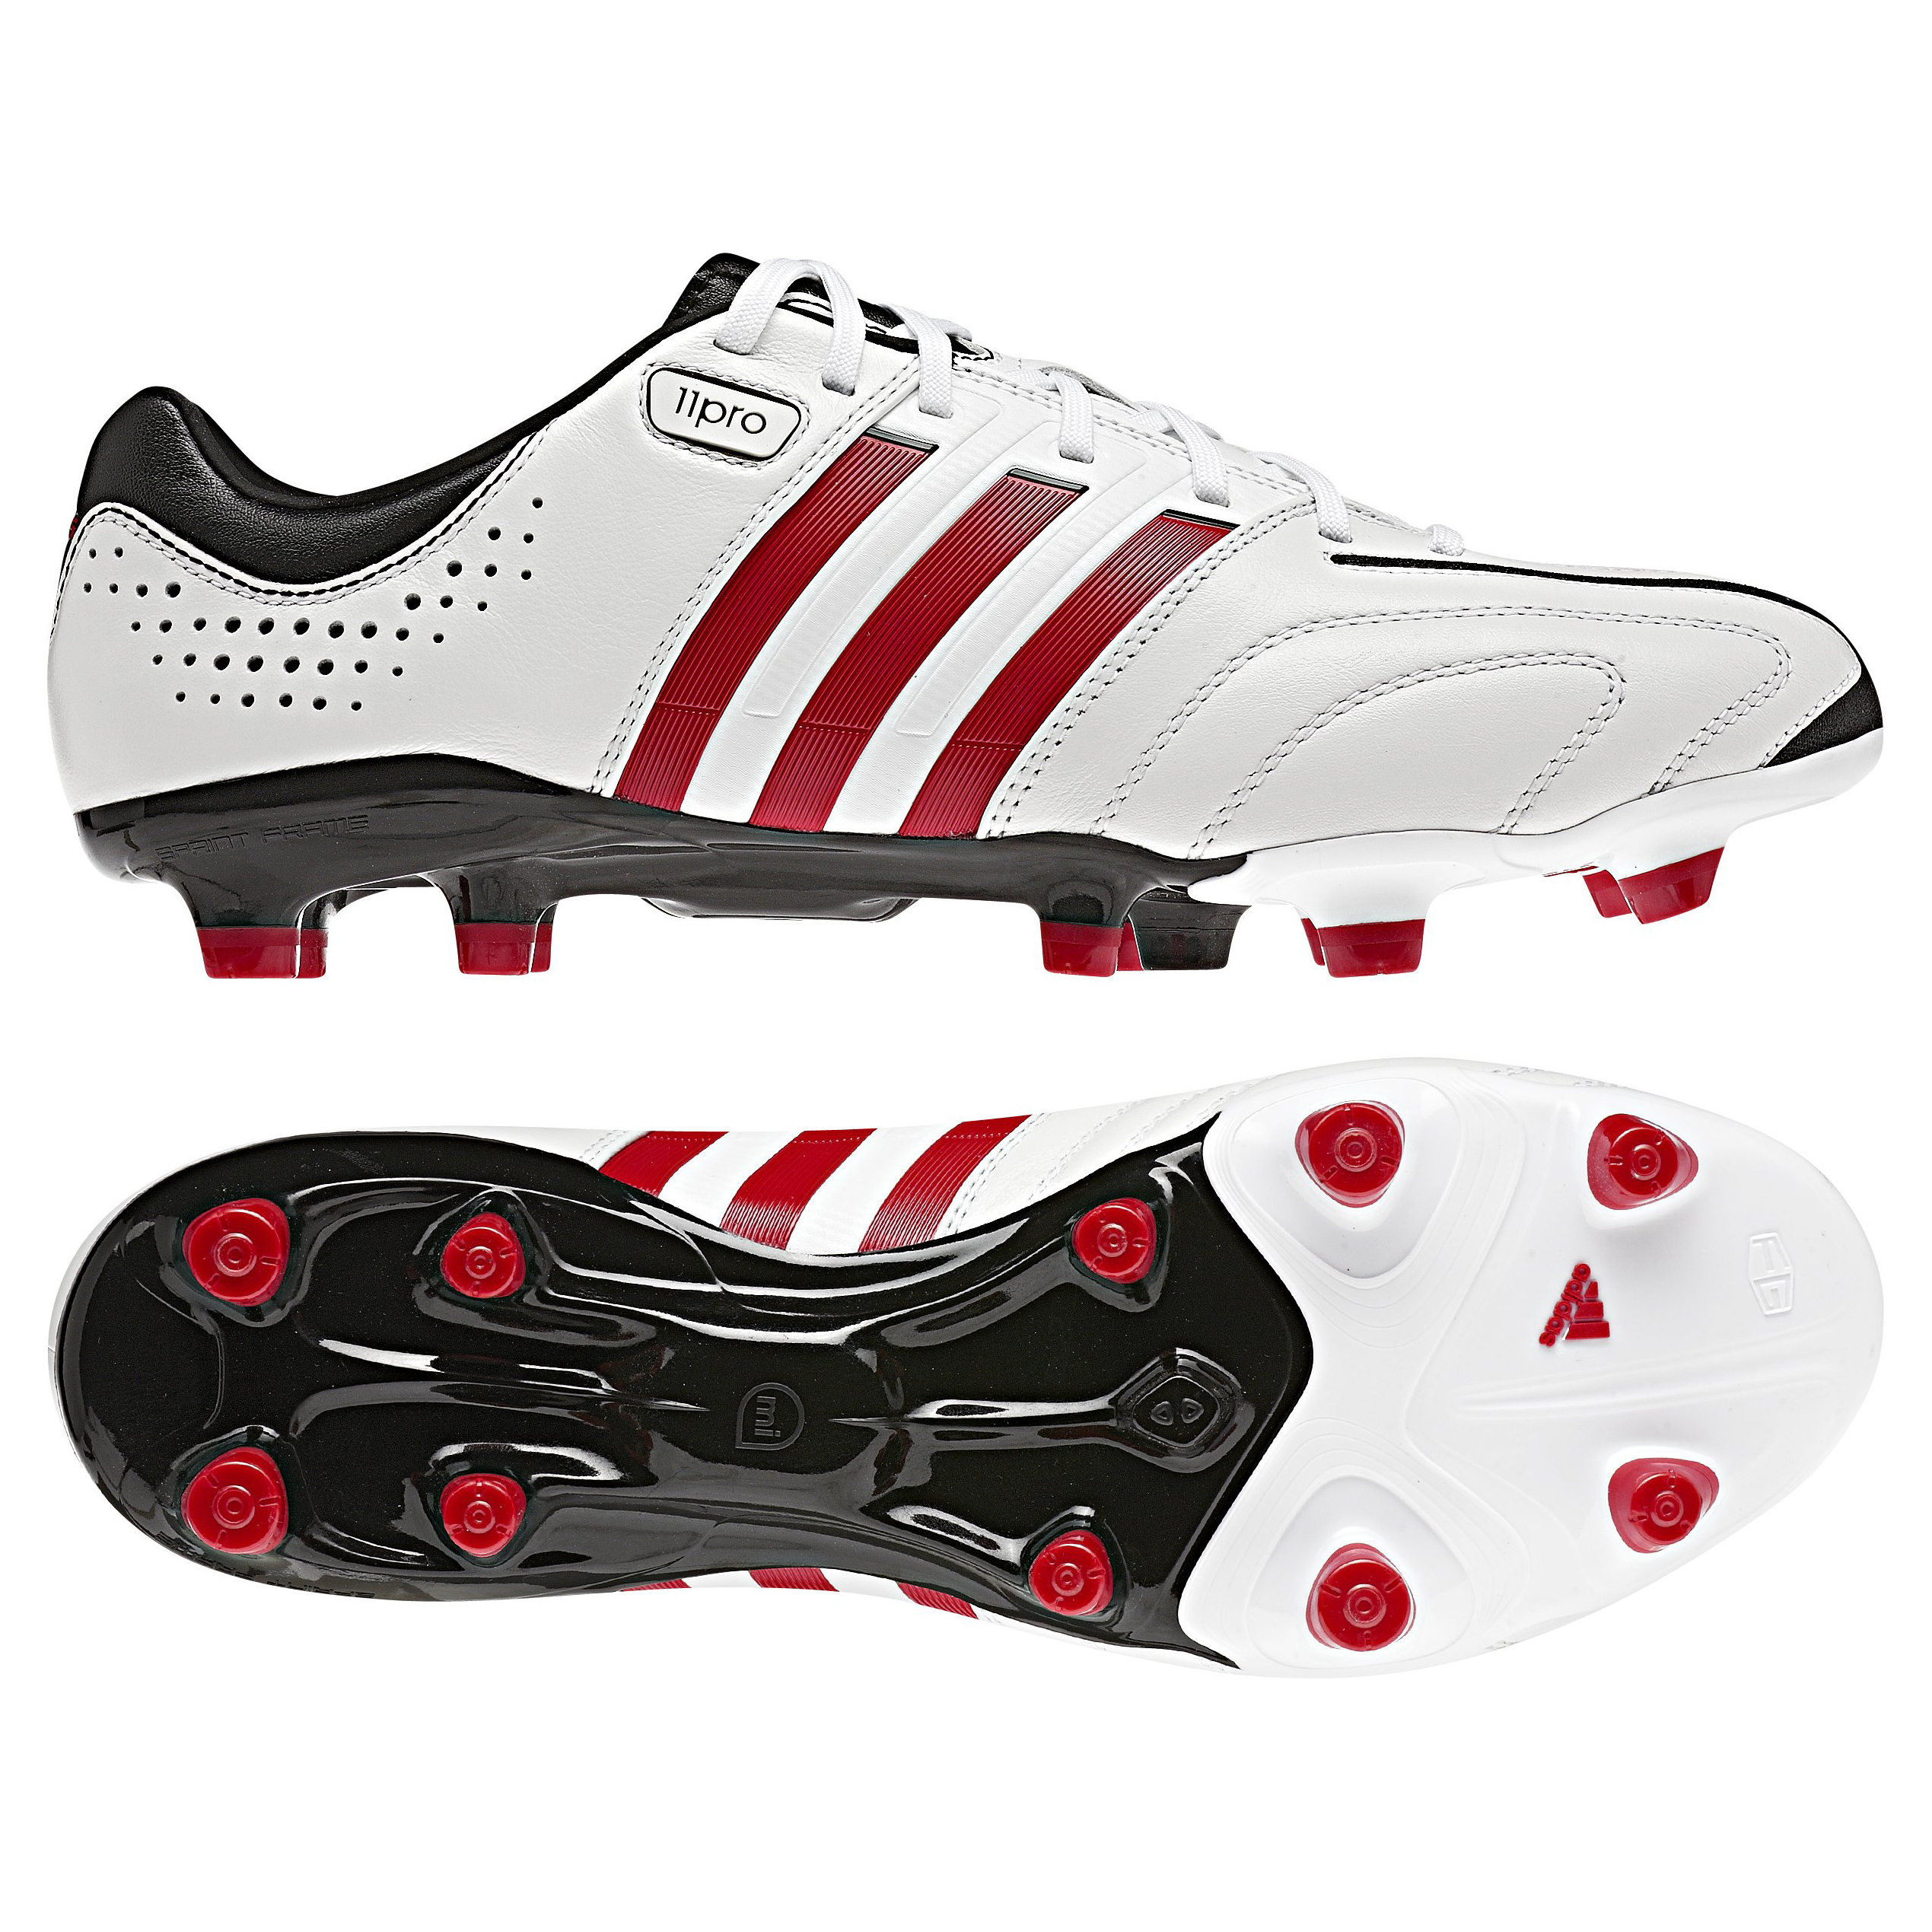 adidas AdiPure 11Pro TRX Firm Ground Football Boots - Running White/Vivid Red/Black